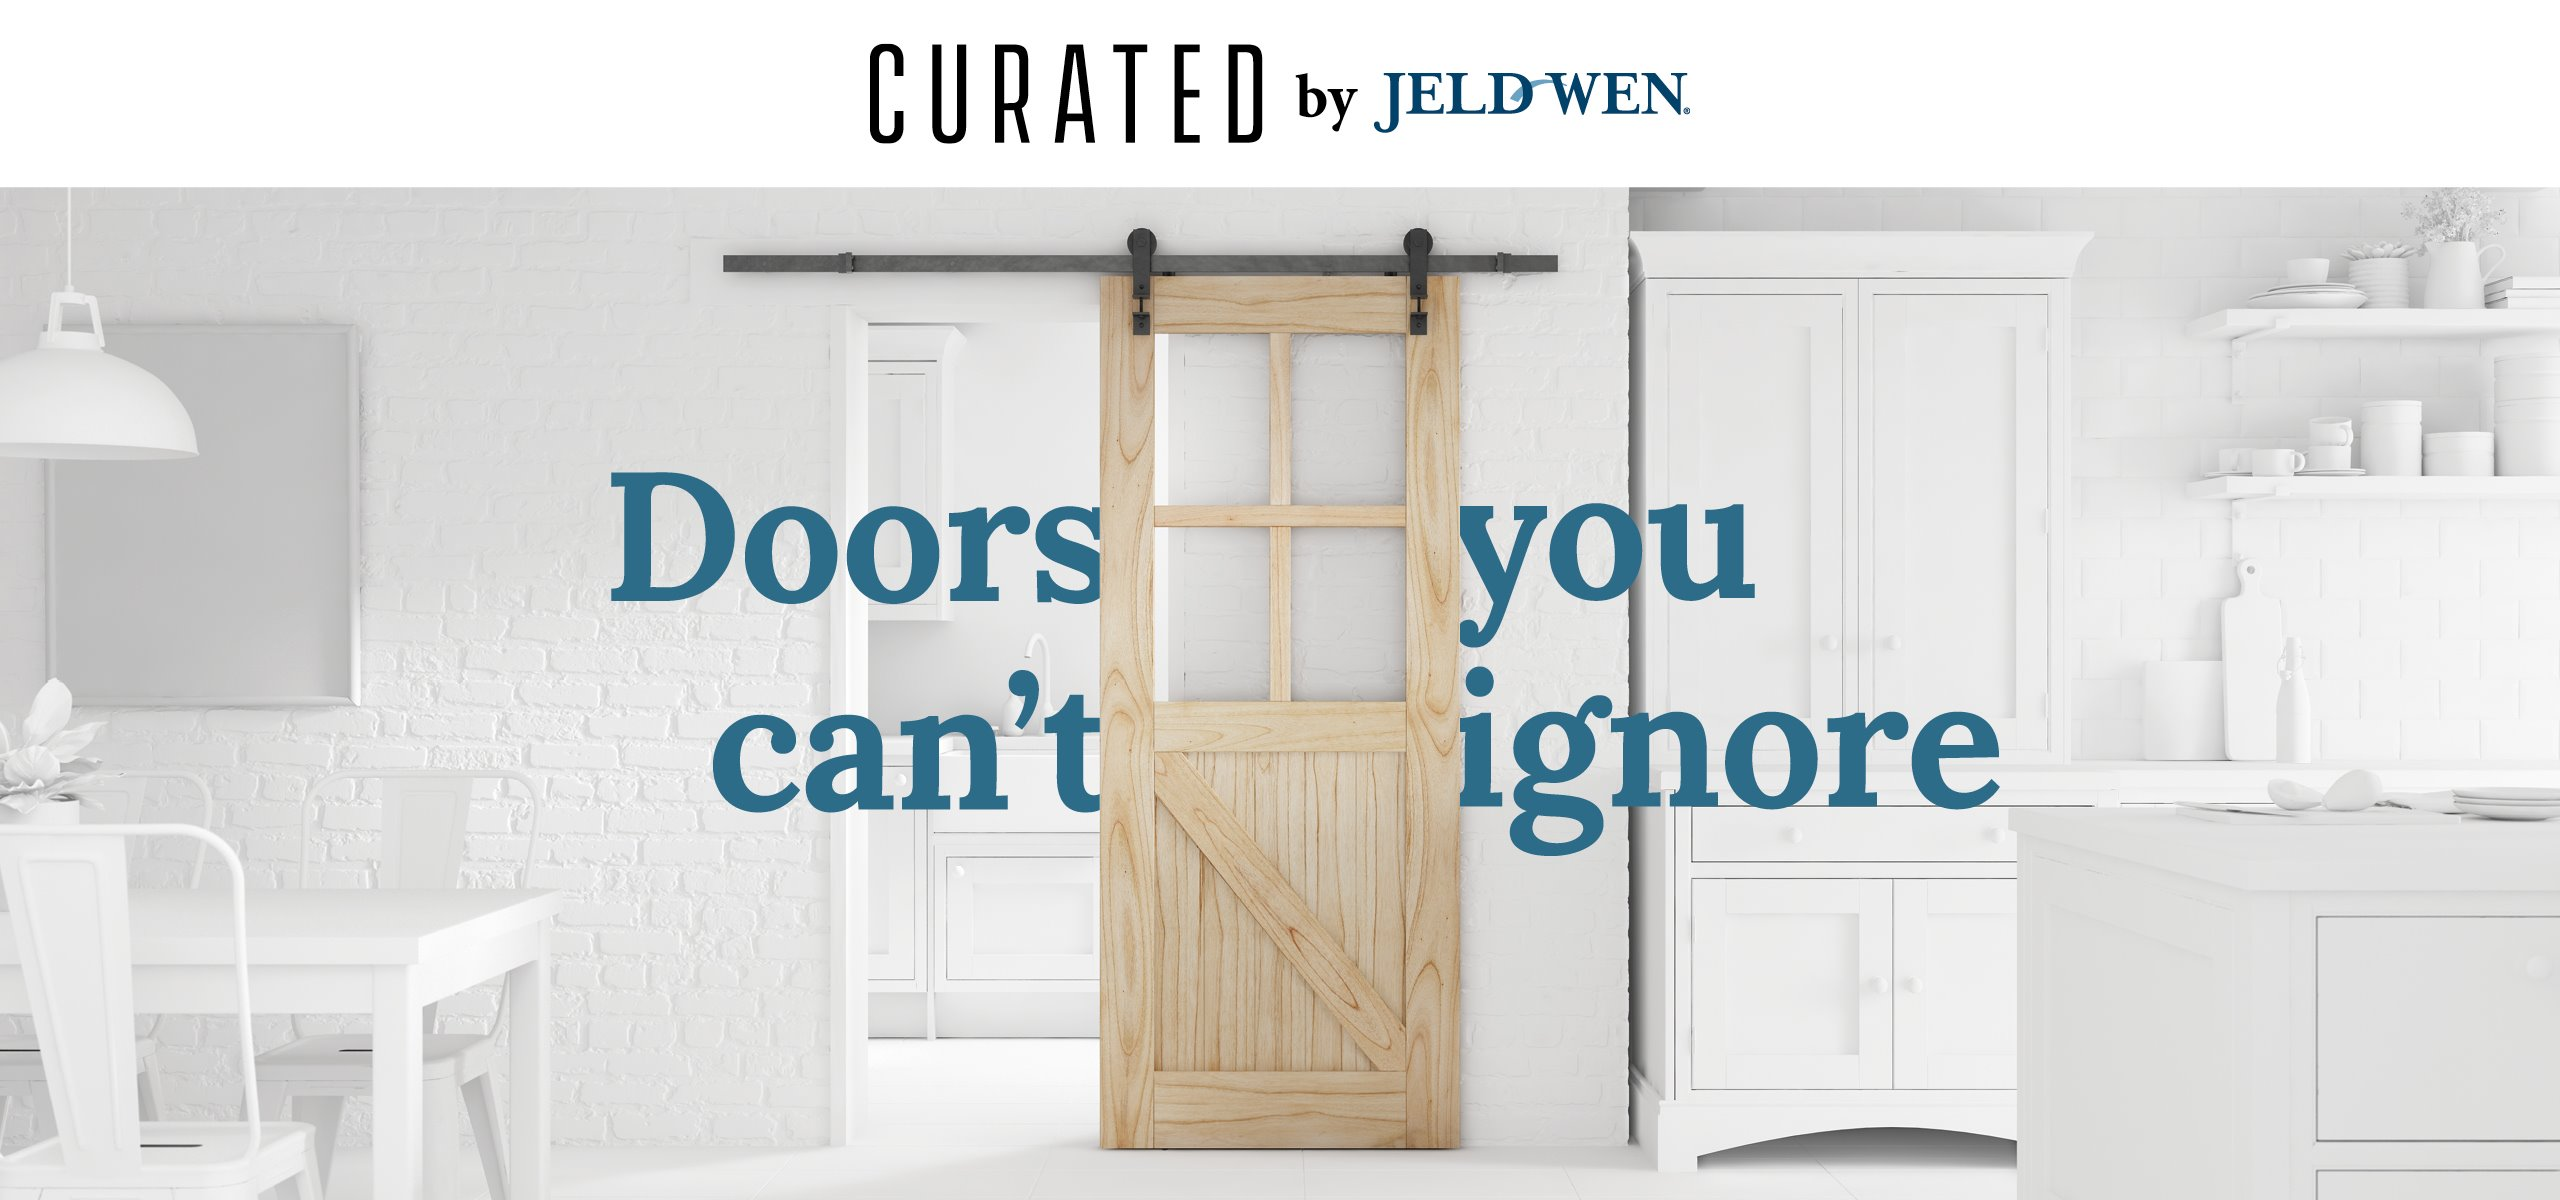 JELD-WEN launches new Curated collection